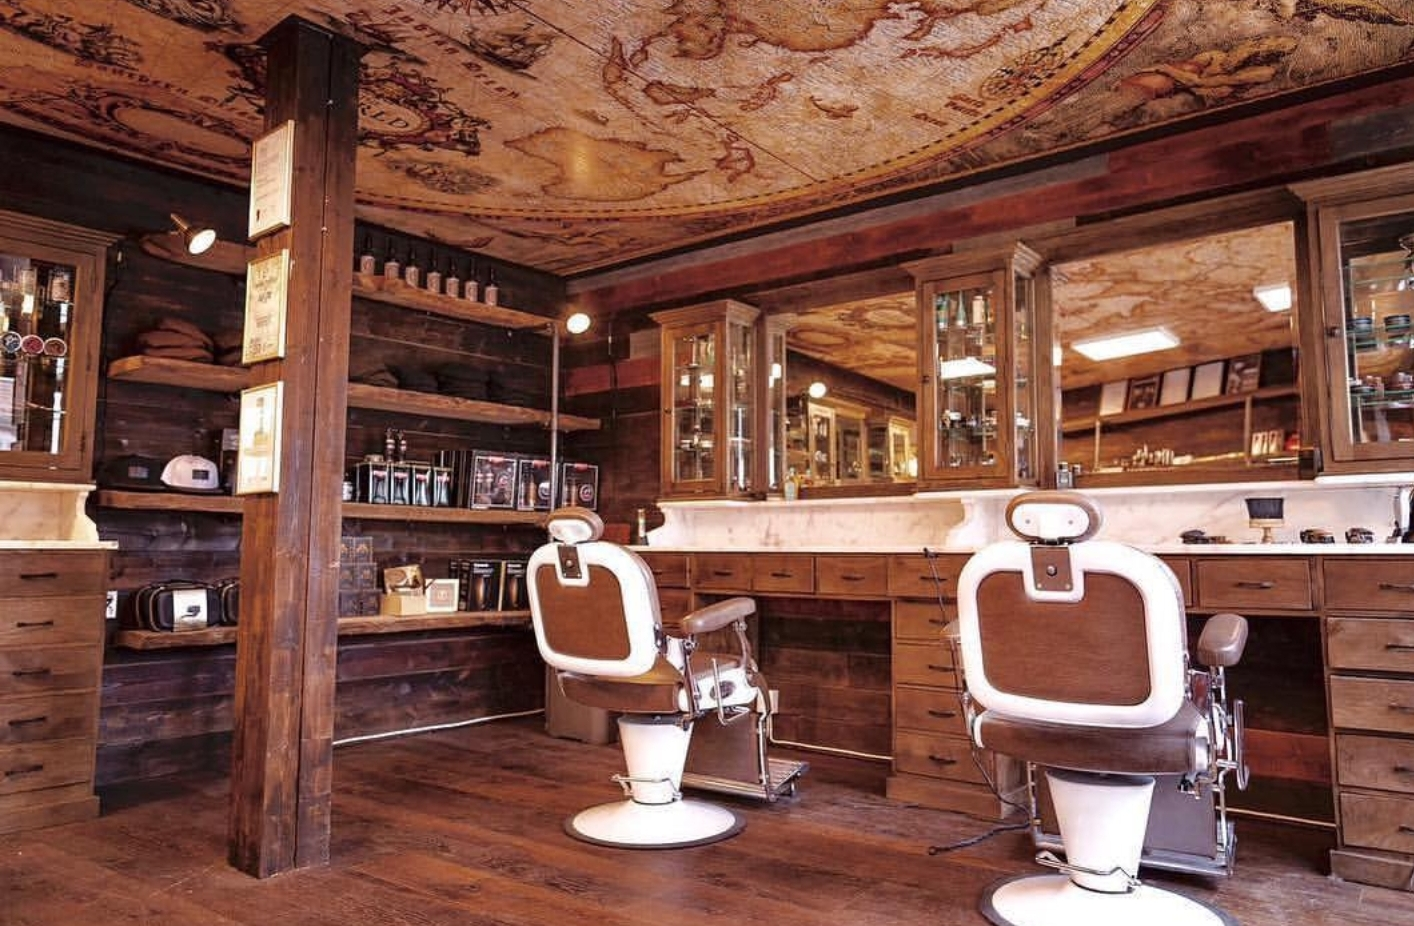 Barber furniture projects   Stunning Vintage barberunits   Solid wood with massive marble tops   Worldwide delivery   Handcrafted with pride   Best for barbers   Barbershop interior